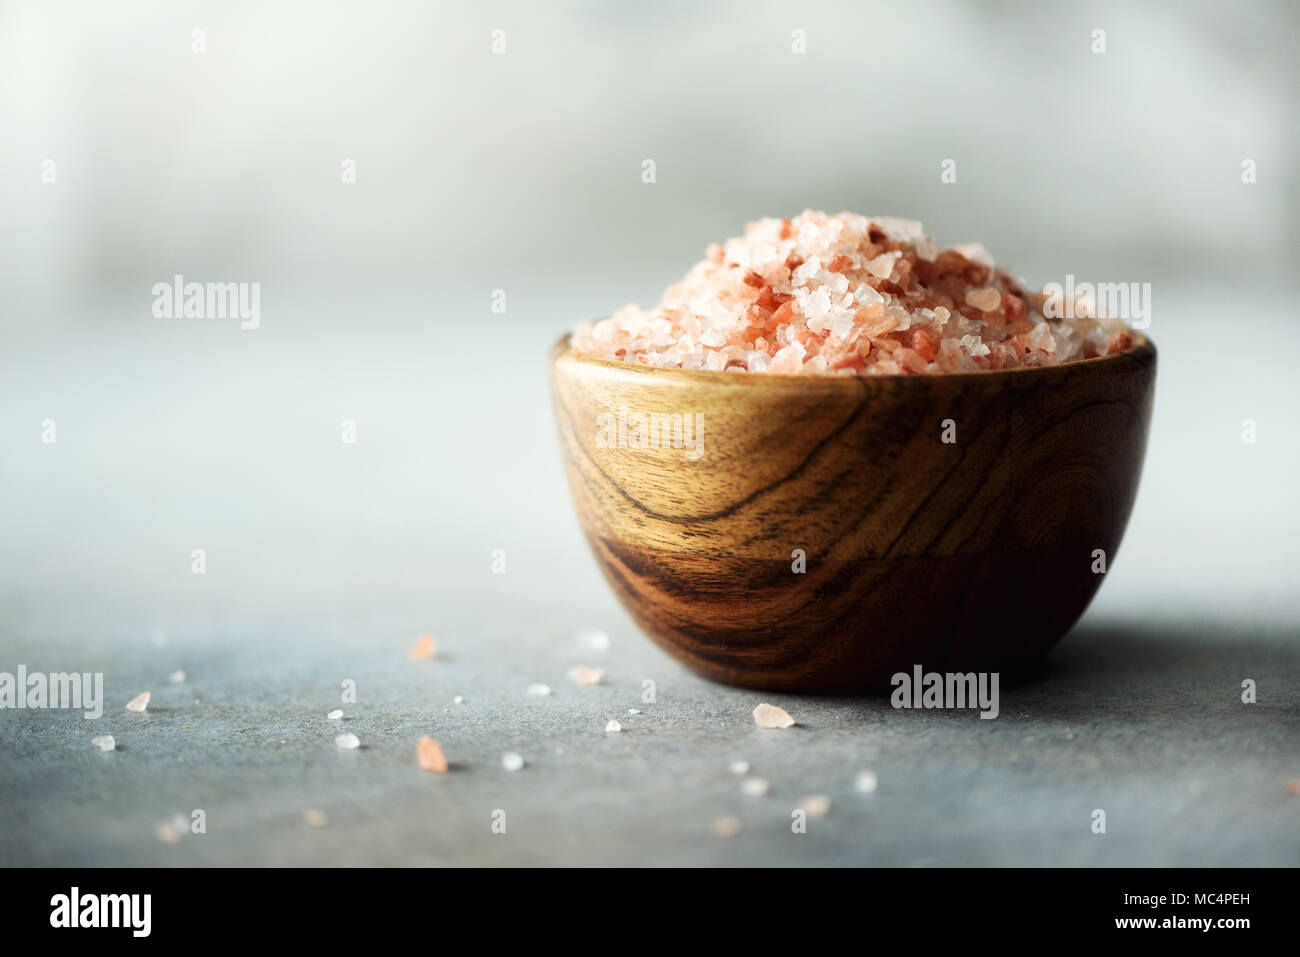 Pink Himalayan salt crystals and powder in wooden bowls on grey concrete background. Healthy diet without salt. Copy space - Stock Image